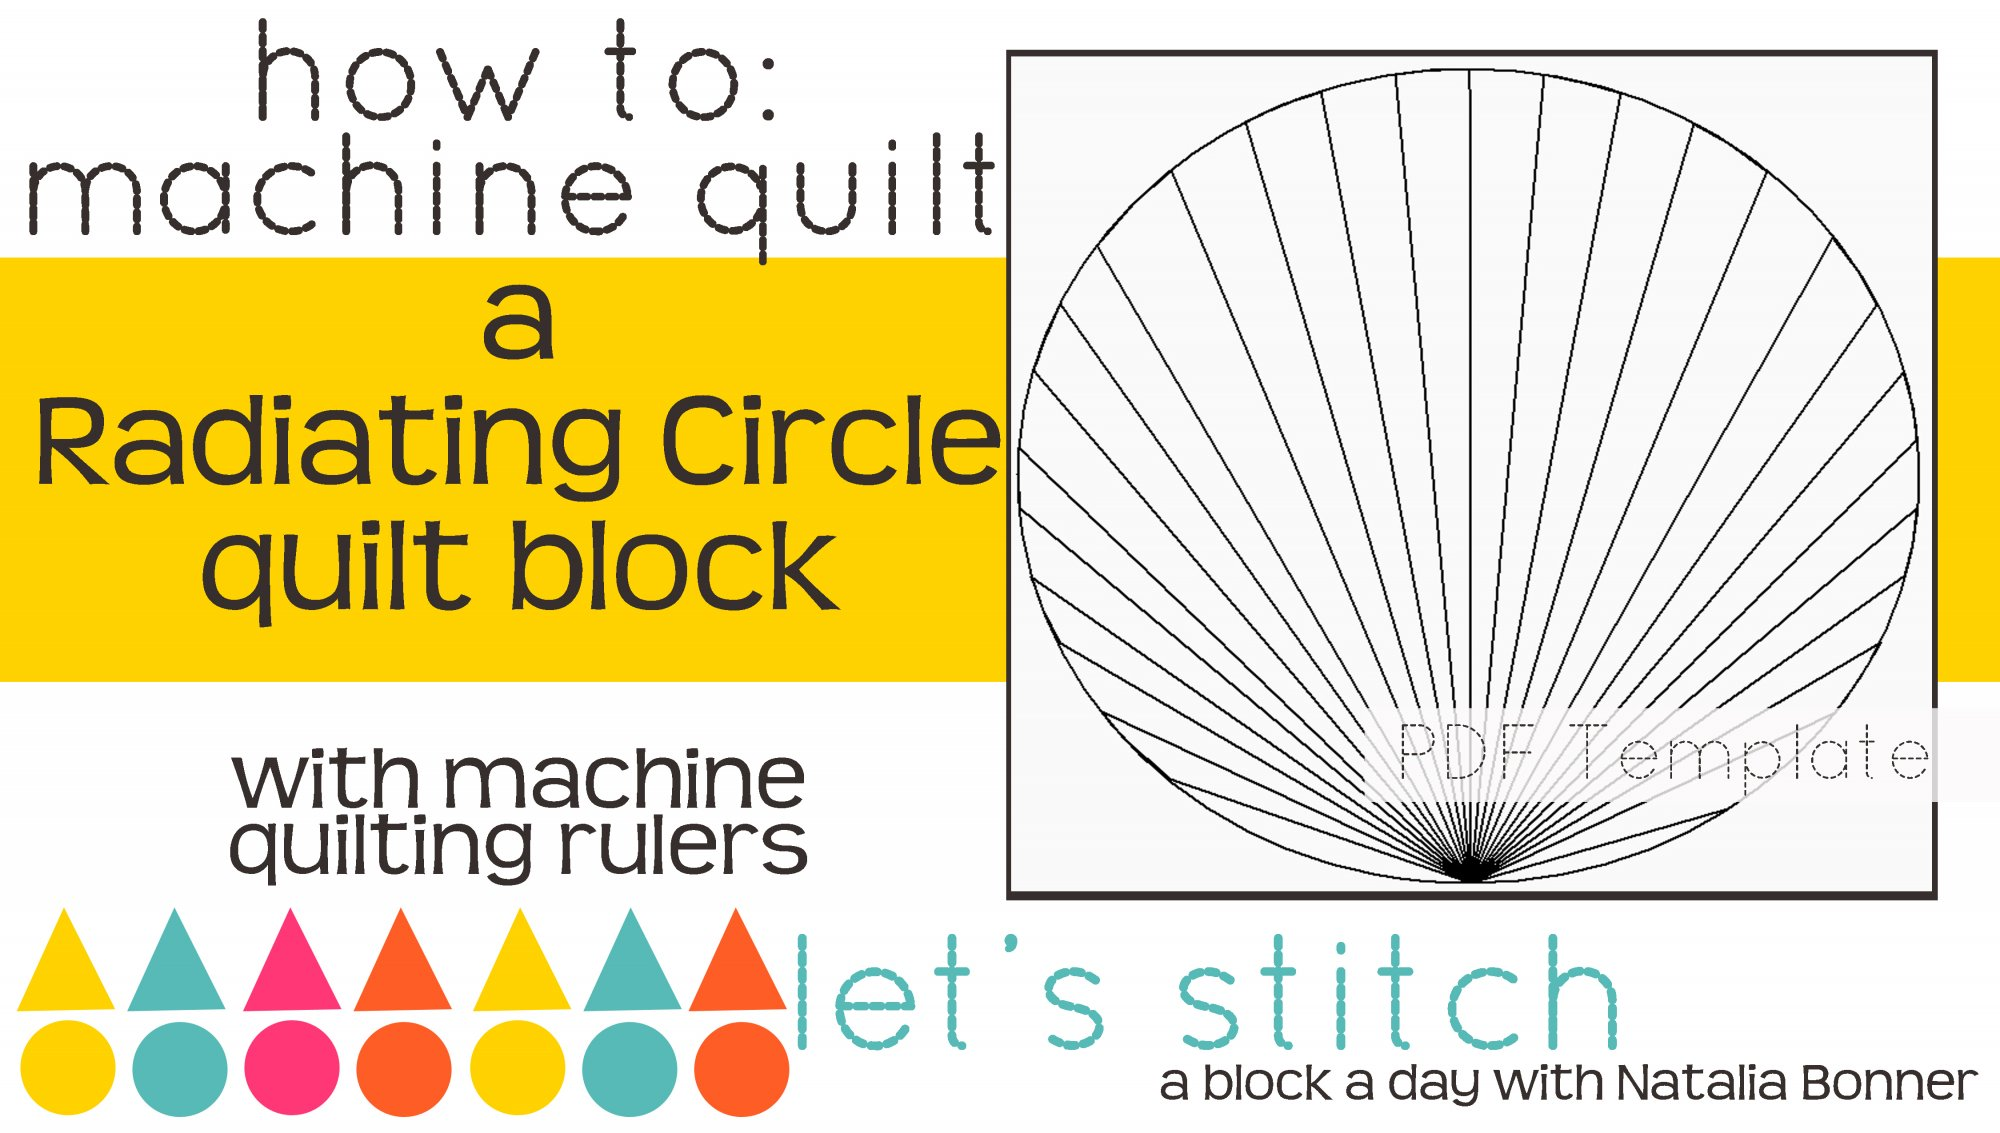 Let's Stitch - A Block a Day With Natalia Bonner - PDF - Radiating Circle